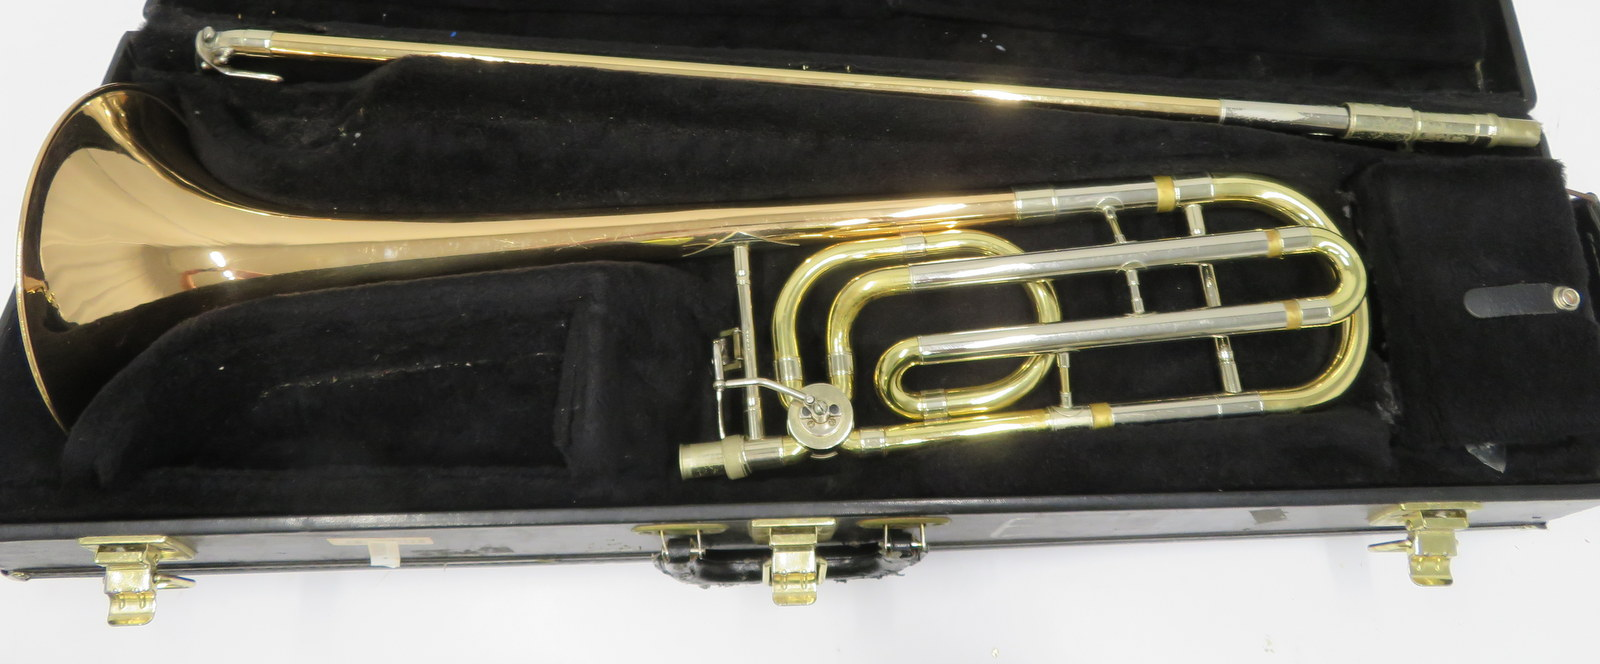 Lot 58 - Conn 88H trombone with case. Serial number: 246631.